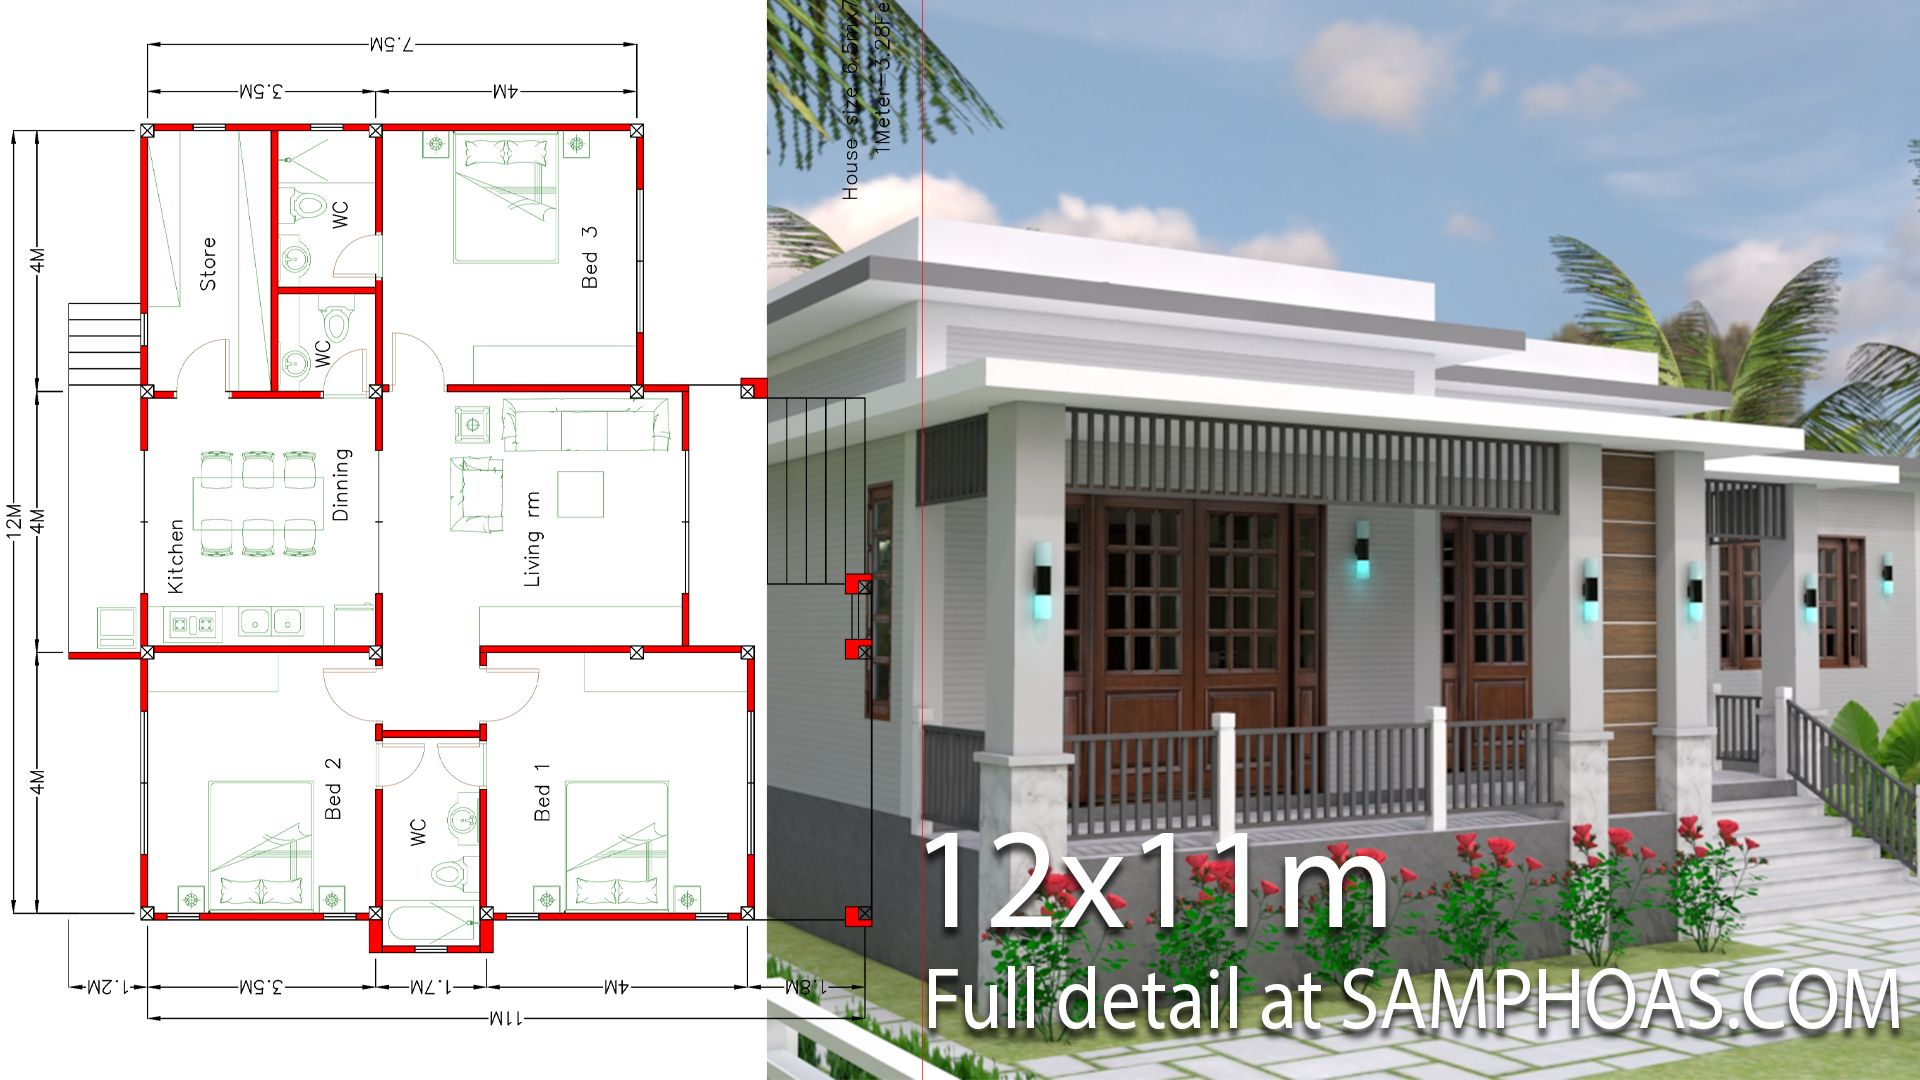 House Plans 12x11m With 3 Bedrooms House Plans Free Downloads Simple House Design House Plan Gallery Beautiful House Plans